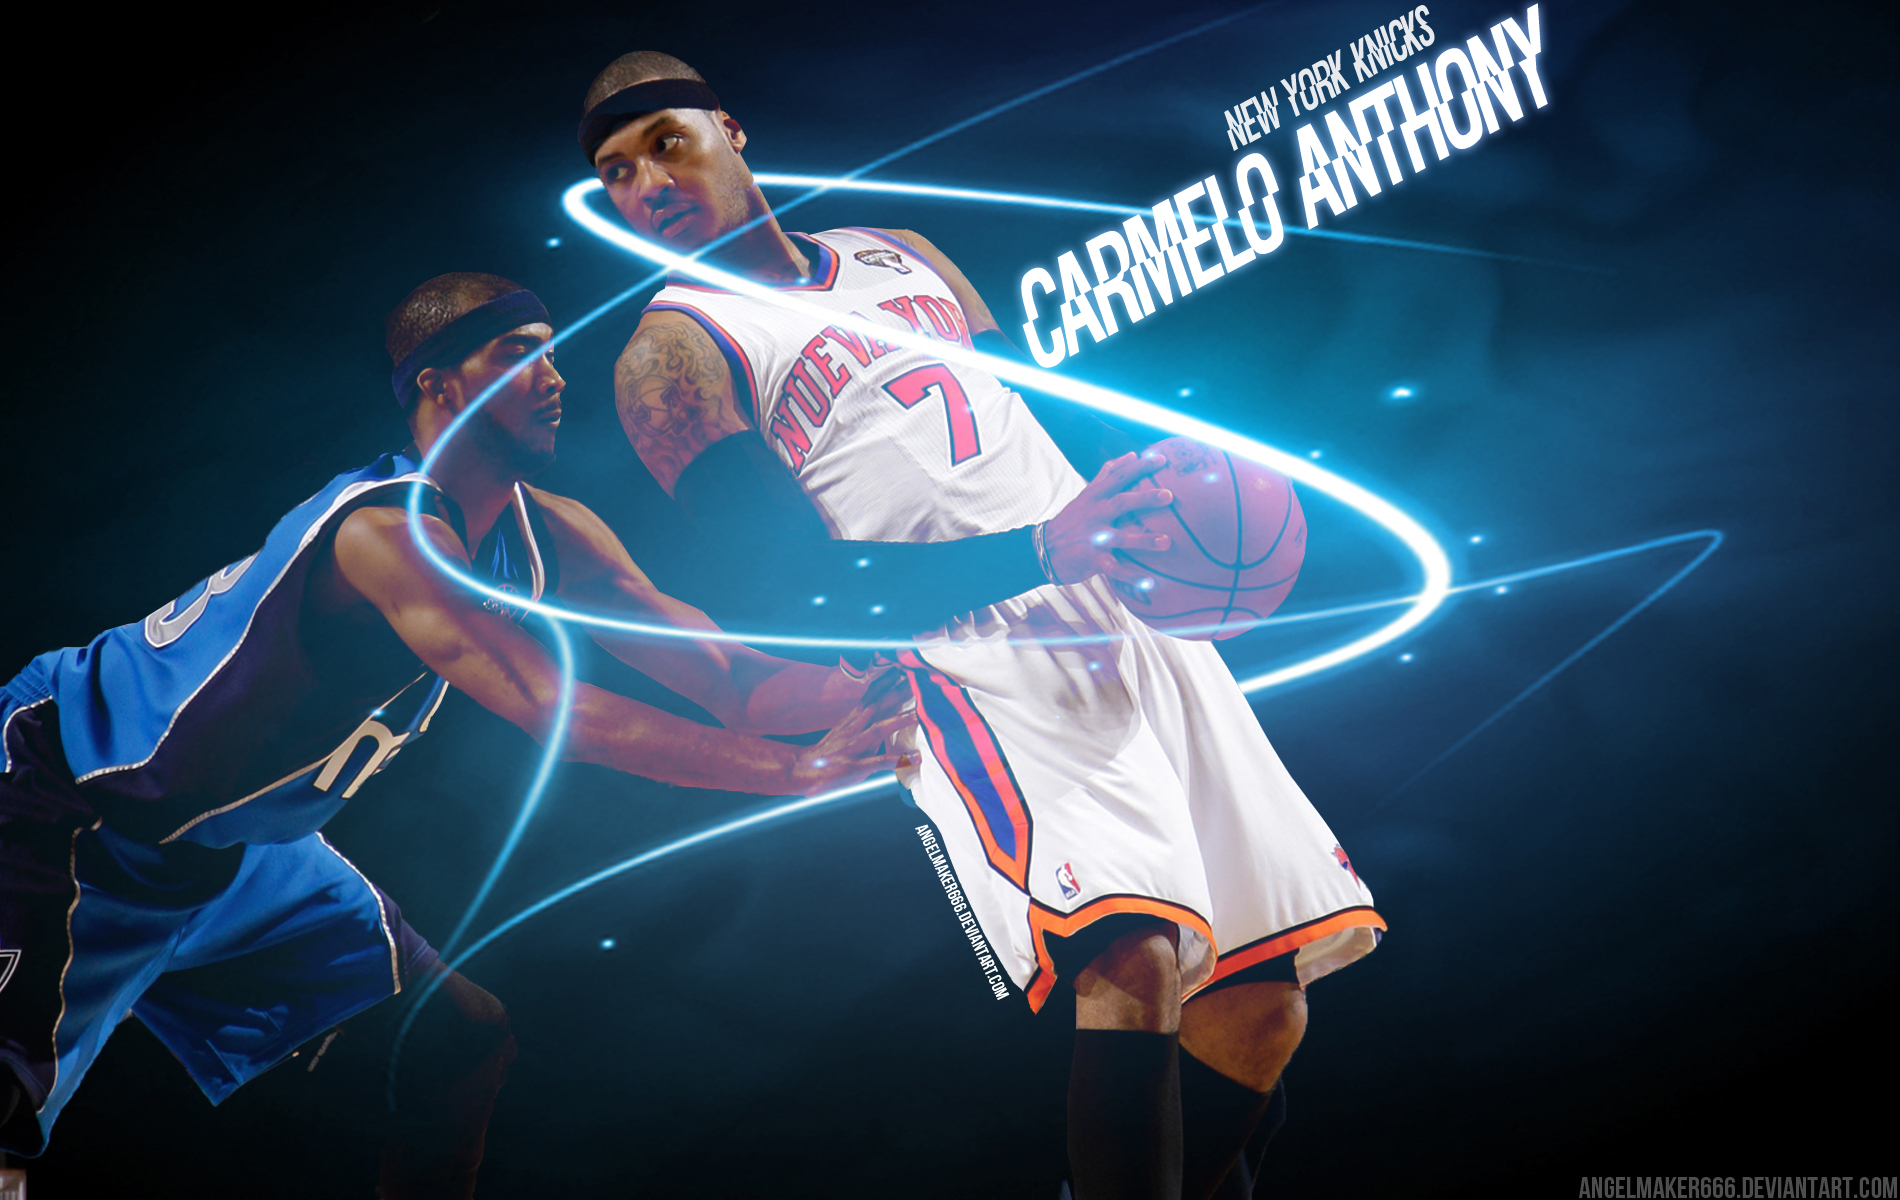 Carmelo anthony knicks wall 7 by ishaanmishra on deviantart carmelo anthony knicks wall 7 by ishaanmishra voltagebd Images